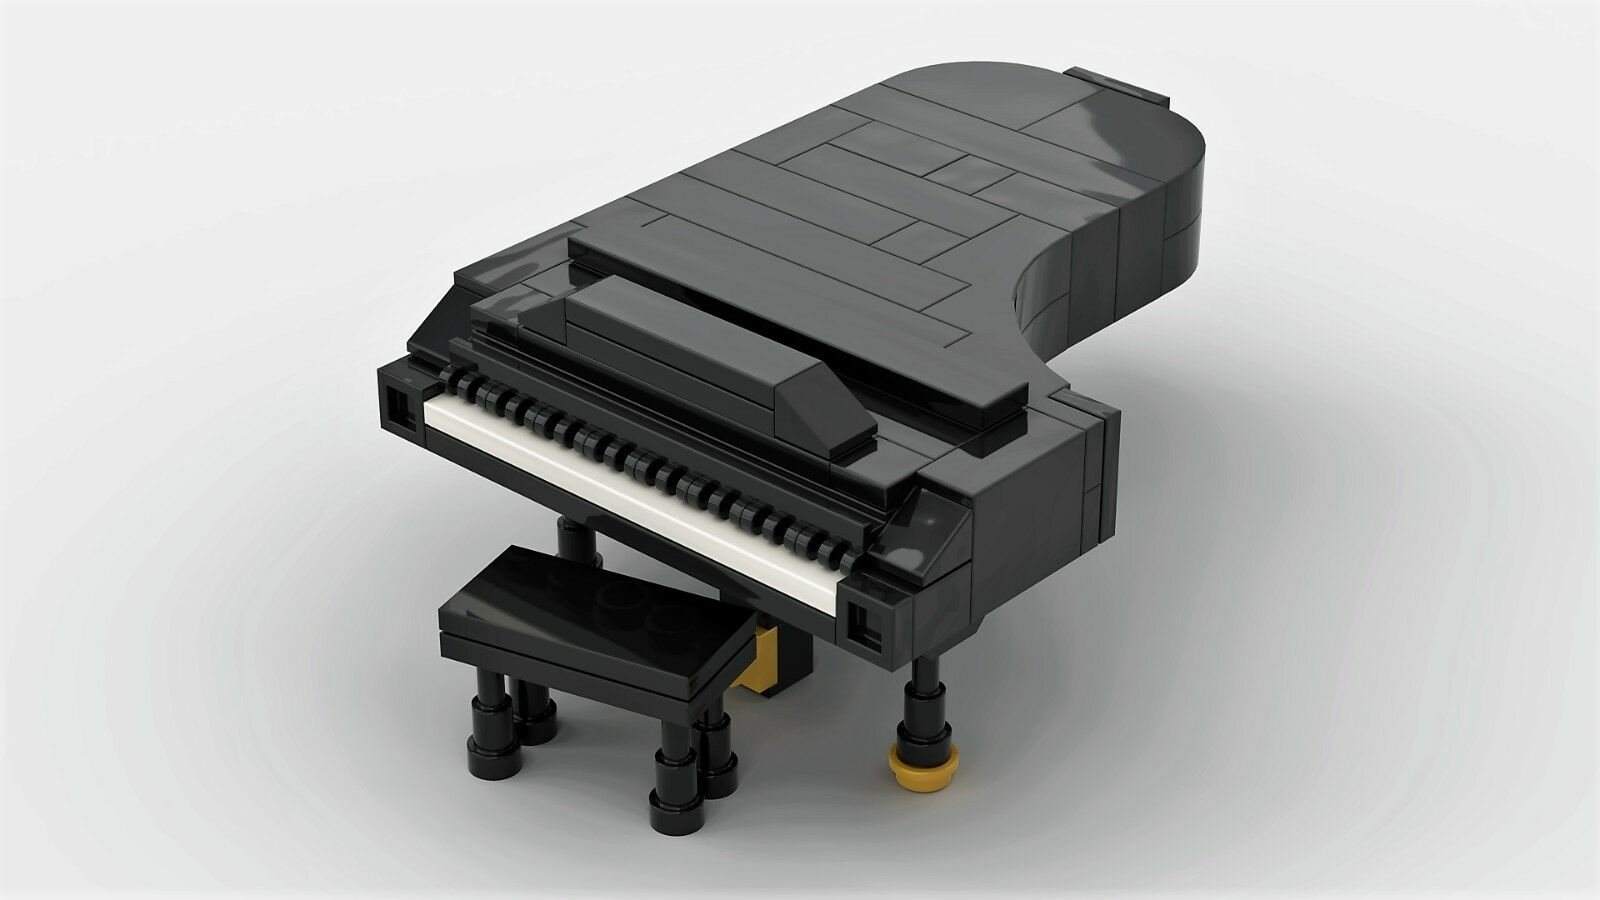 LEGO Grand Piano Custom MOC PDF Instructions Only - No Bricks | Shopping  Bin - Search eBay faster